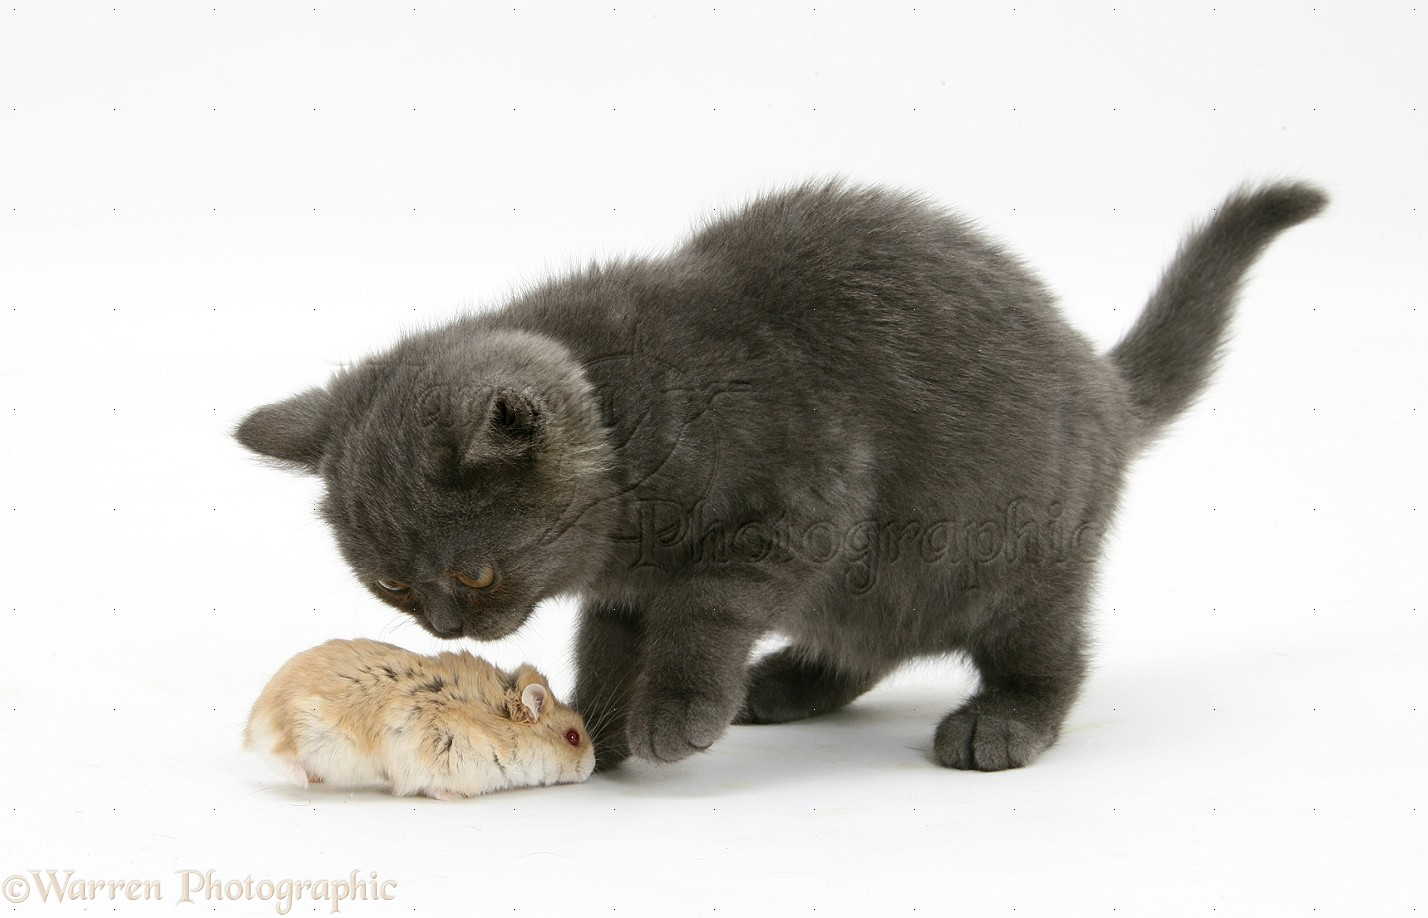 WP23785 Grey kitten meeting Dwarf Siberian Hamster.